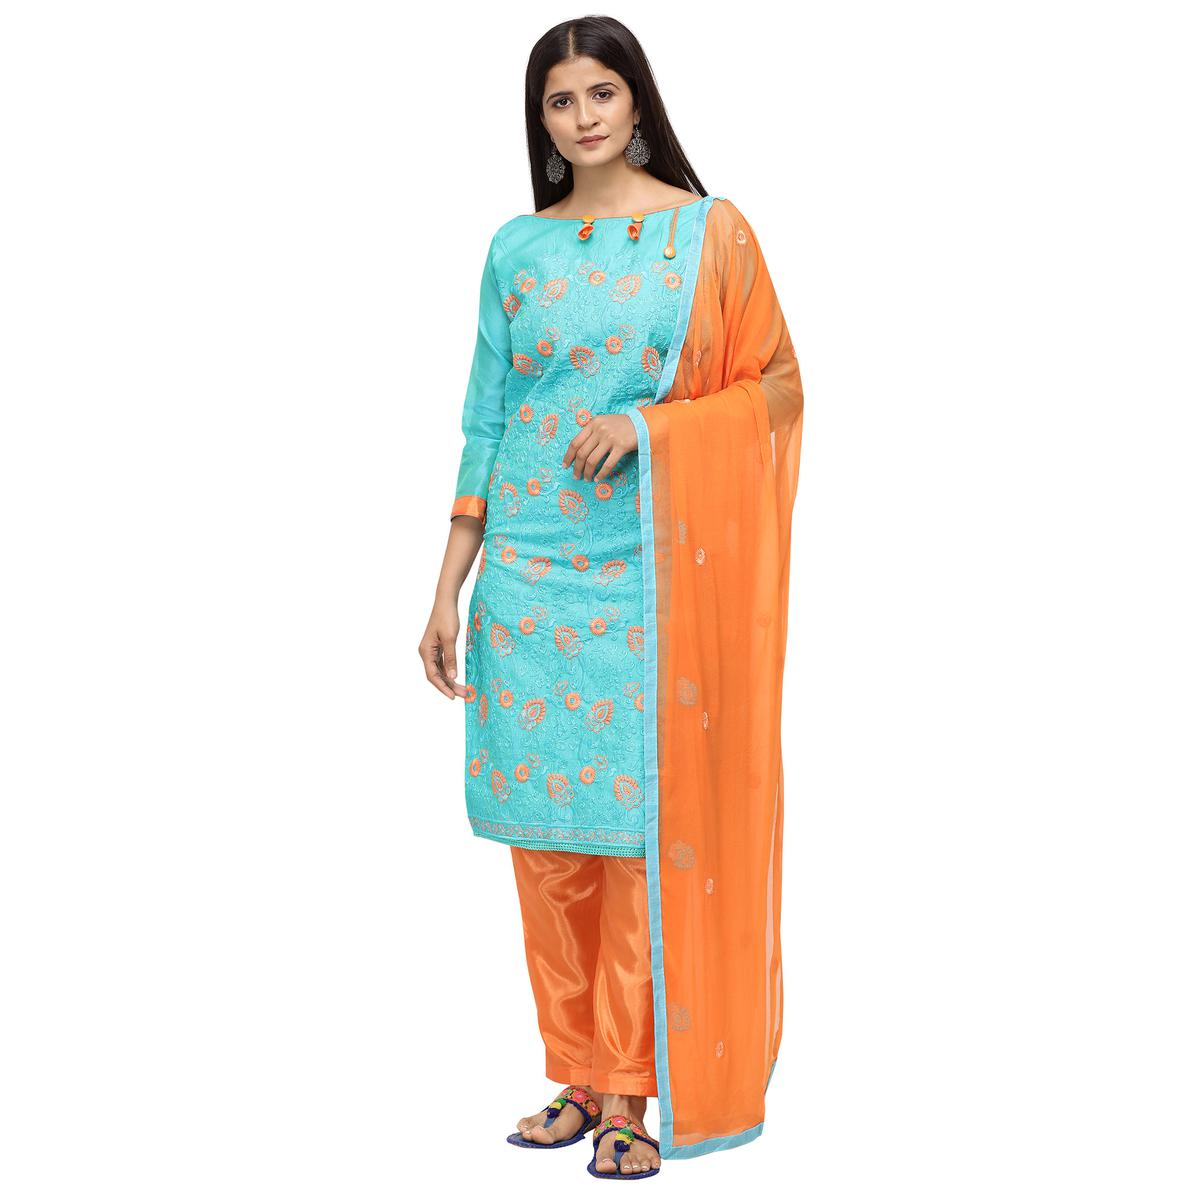 Exclusive Sky Blue Colored Casual Wear Embroidered Chanderi Cotton Dress Material